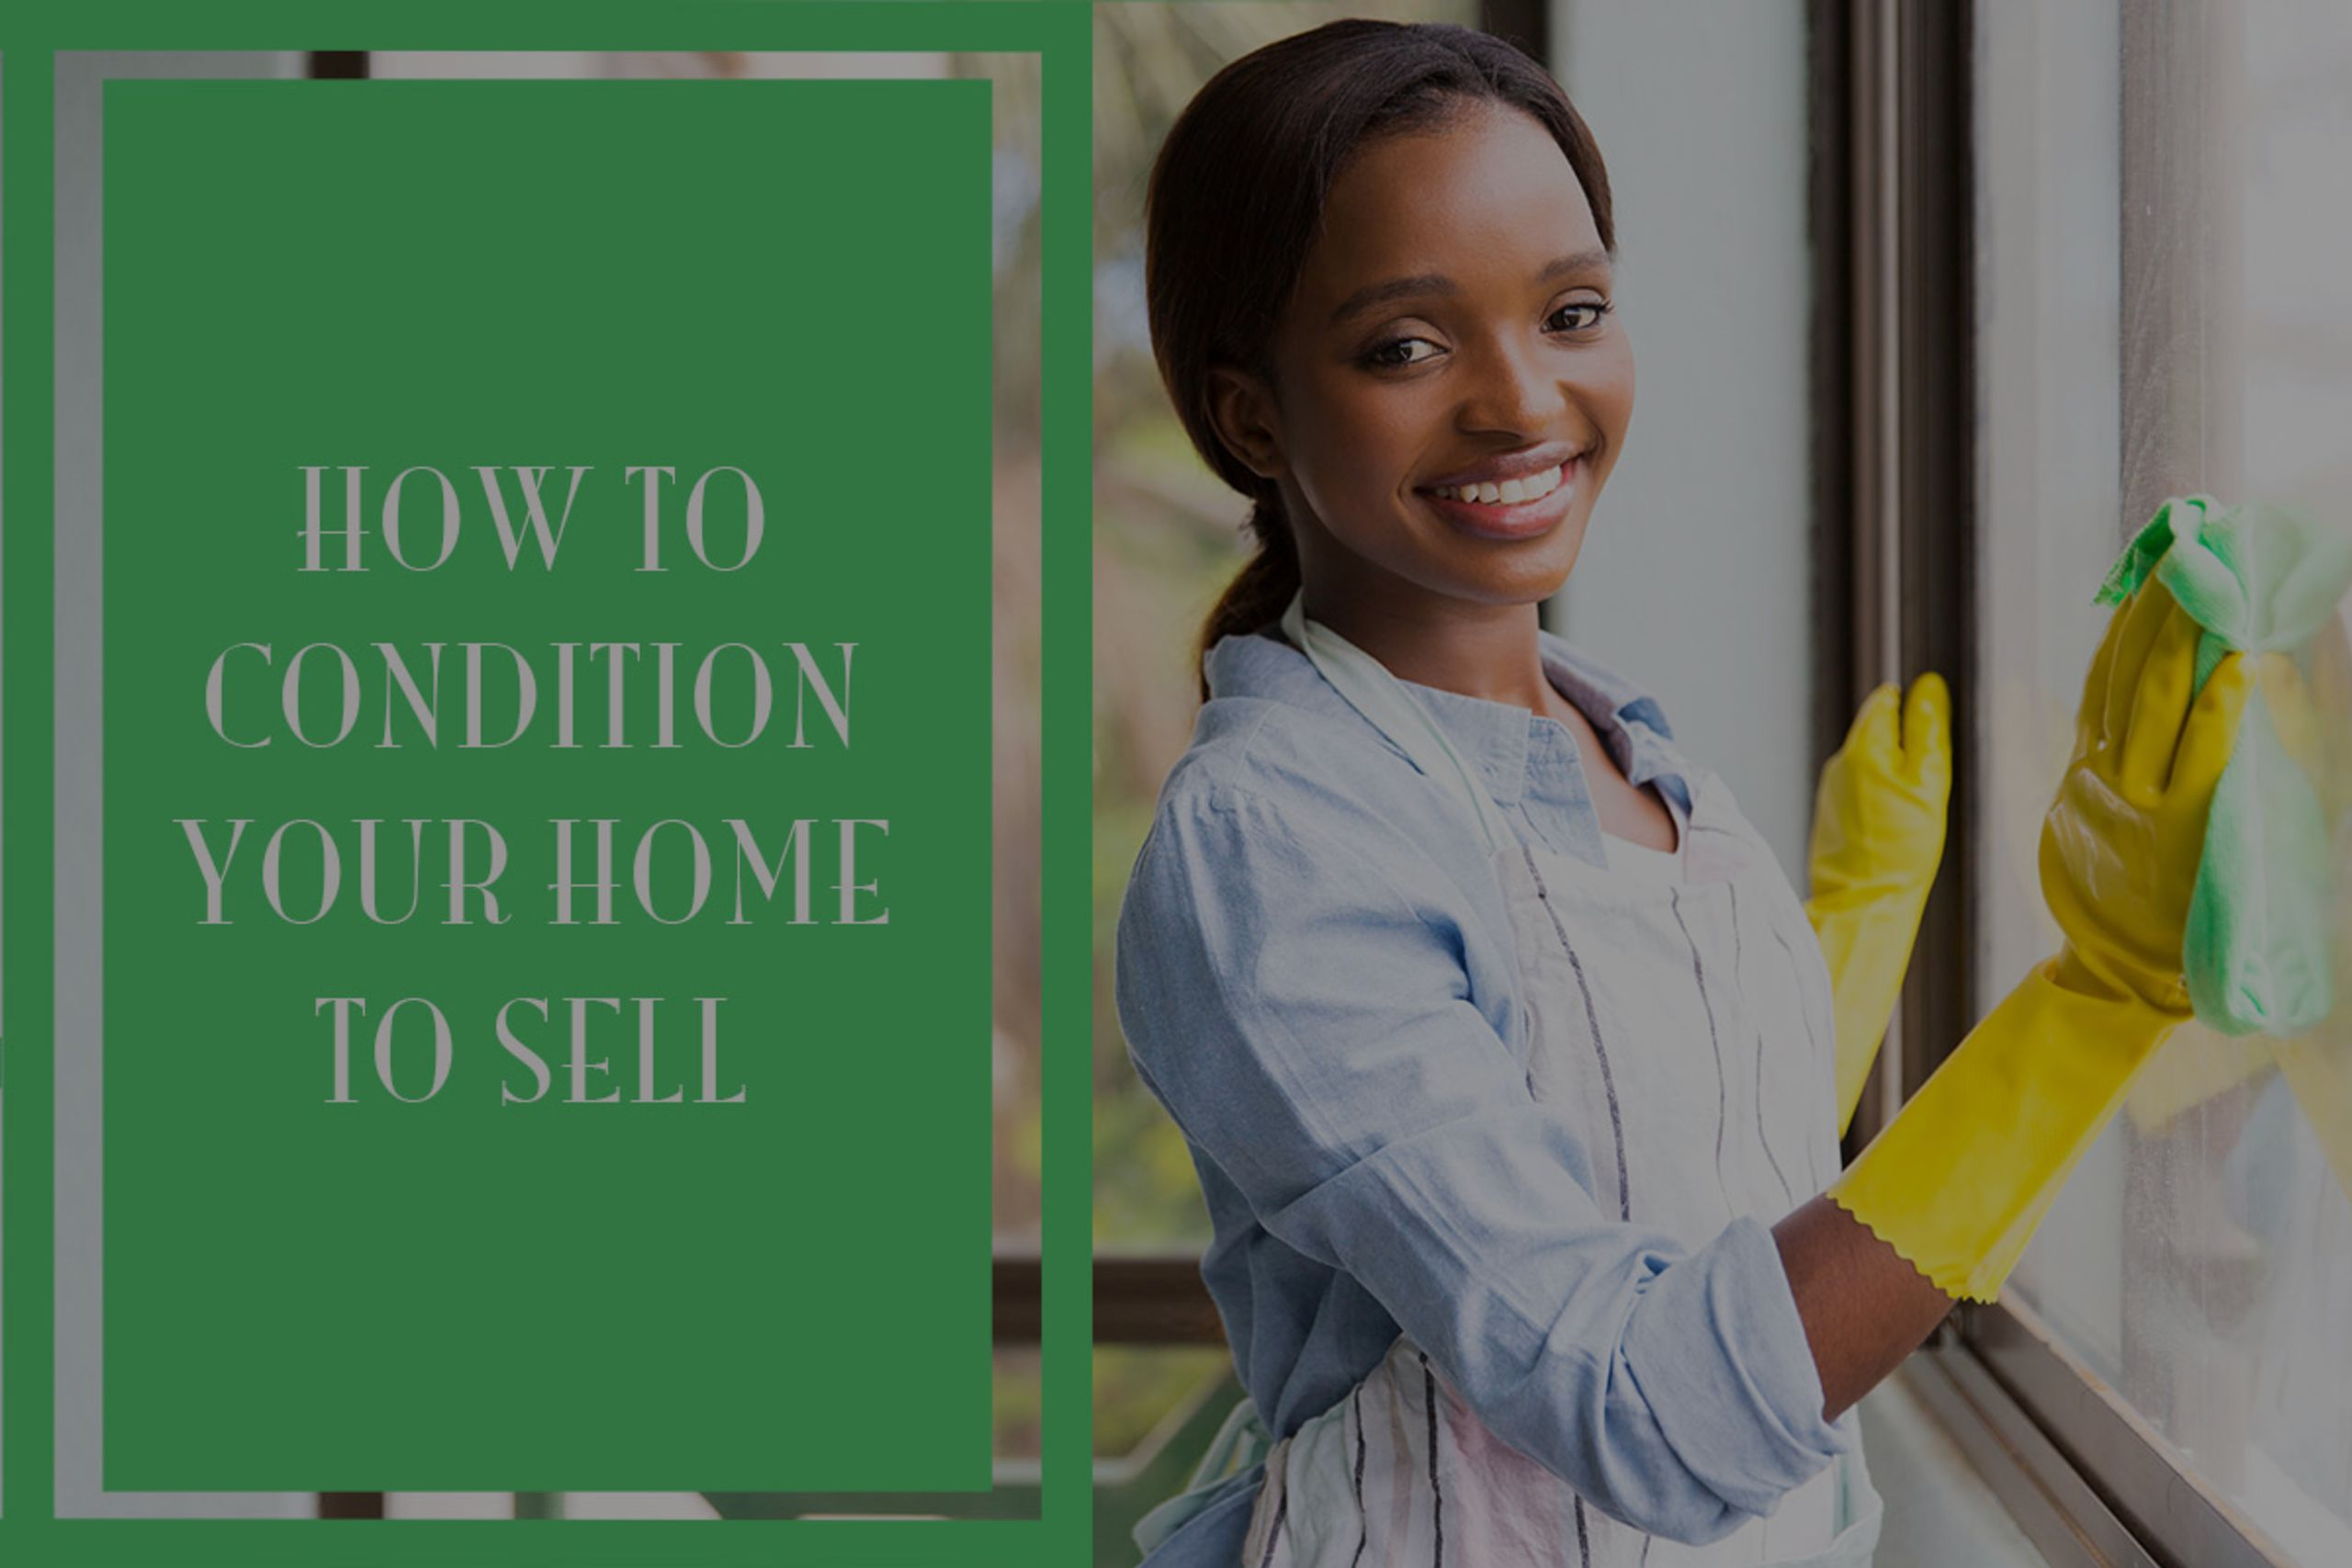 How to Condition Your Home to Sell